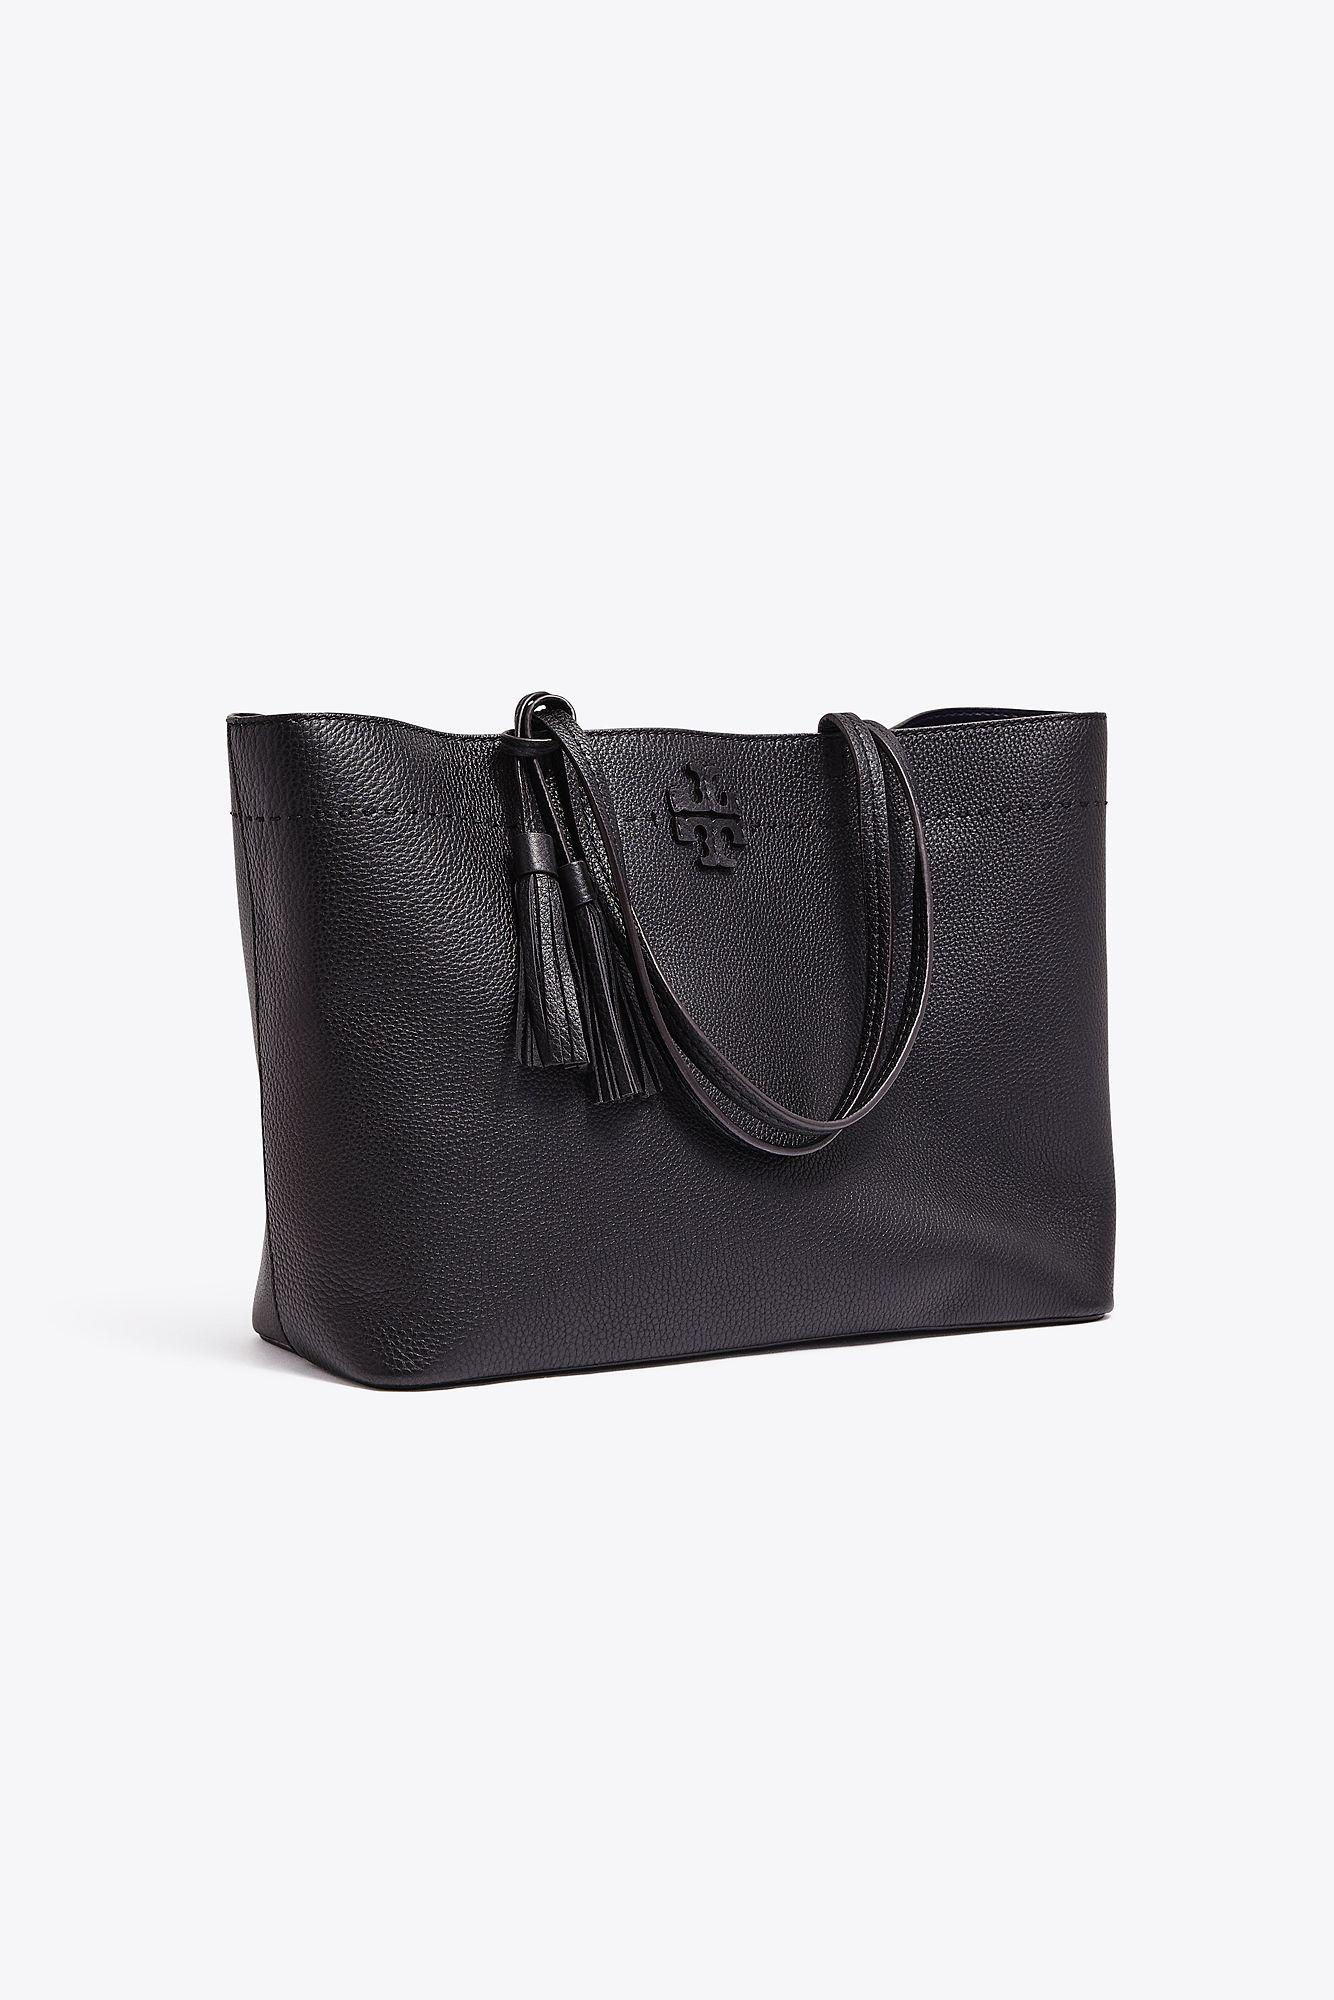 315d84daac09 Tory Burch Mcgraw Medium Leather Tote in Black - Save 5% - Lyst